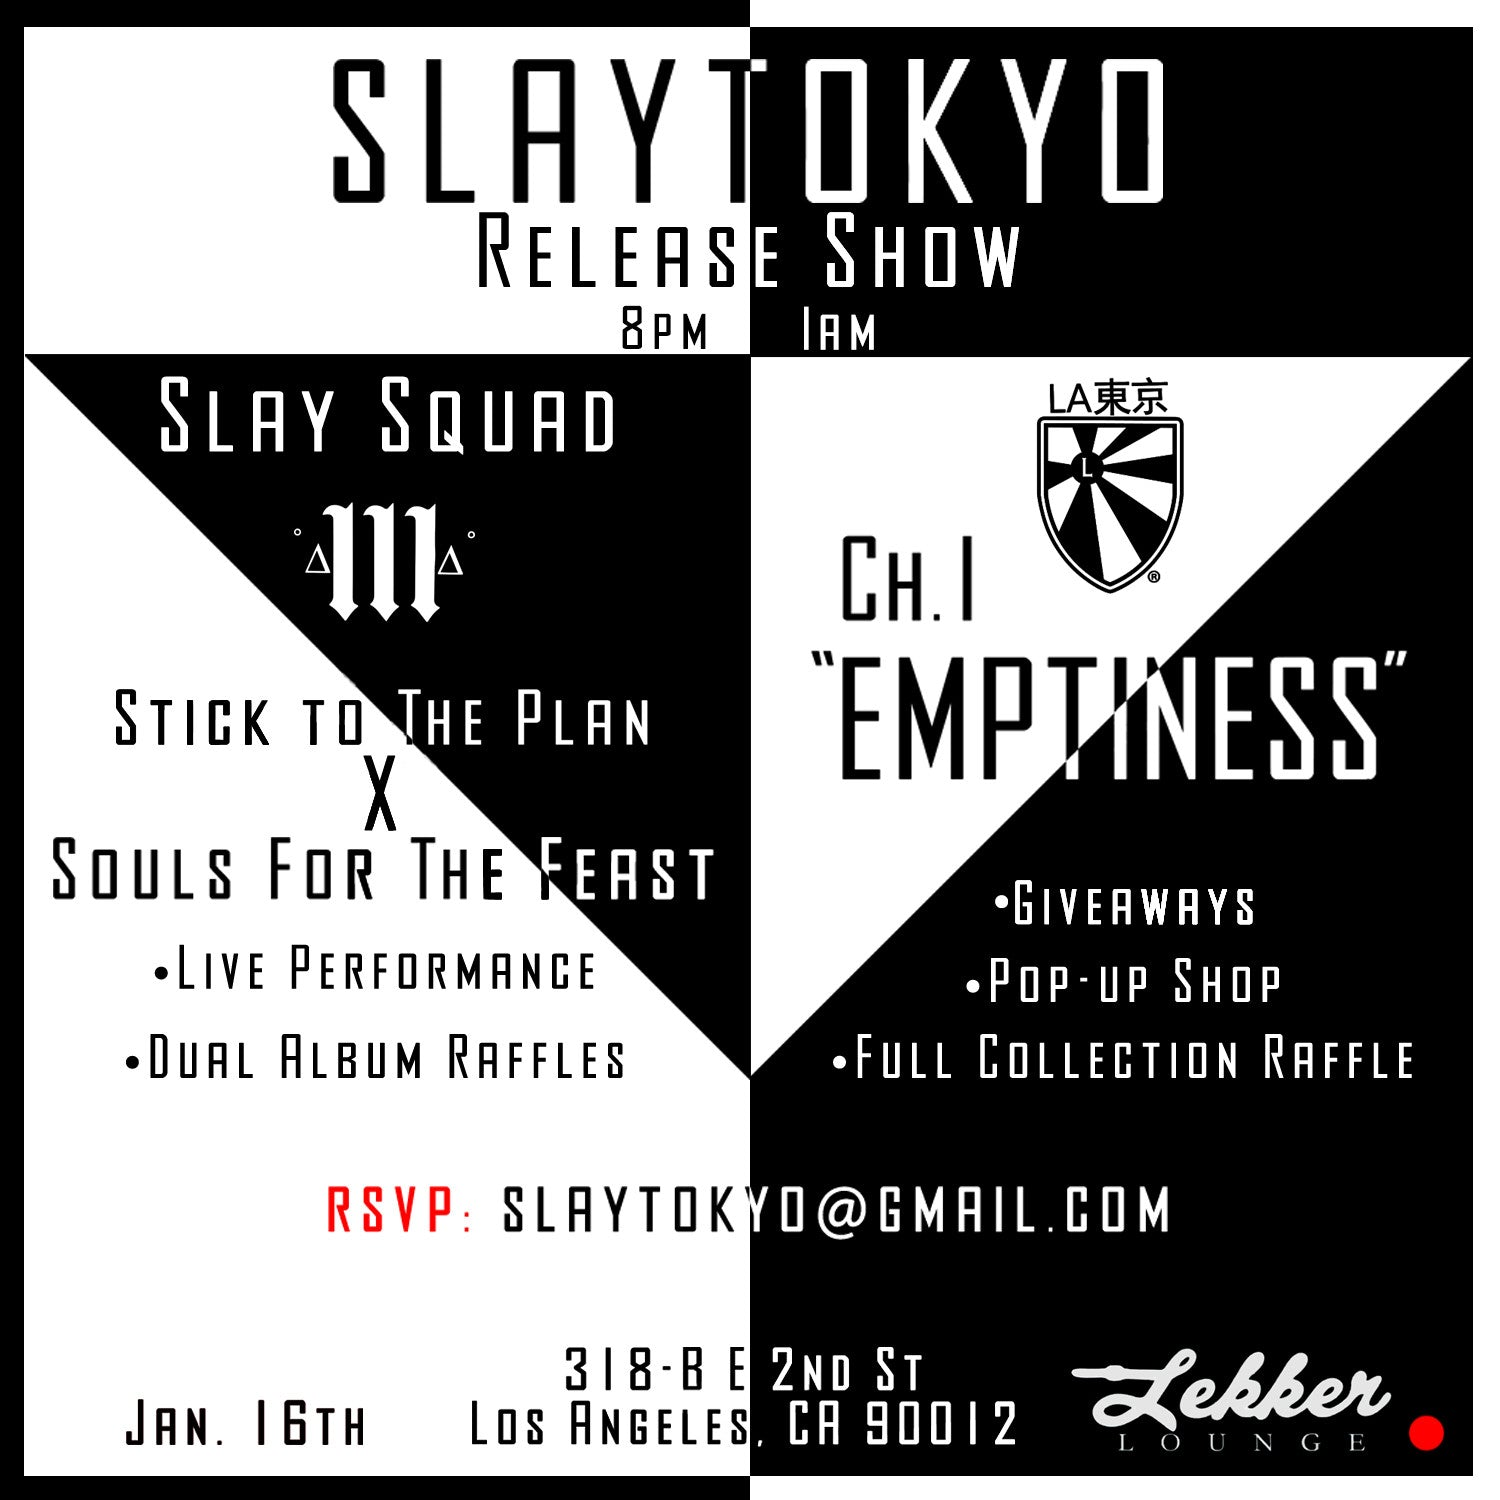 Slaytokyo Release Party